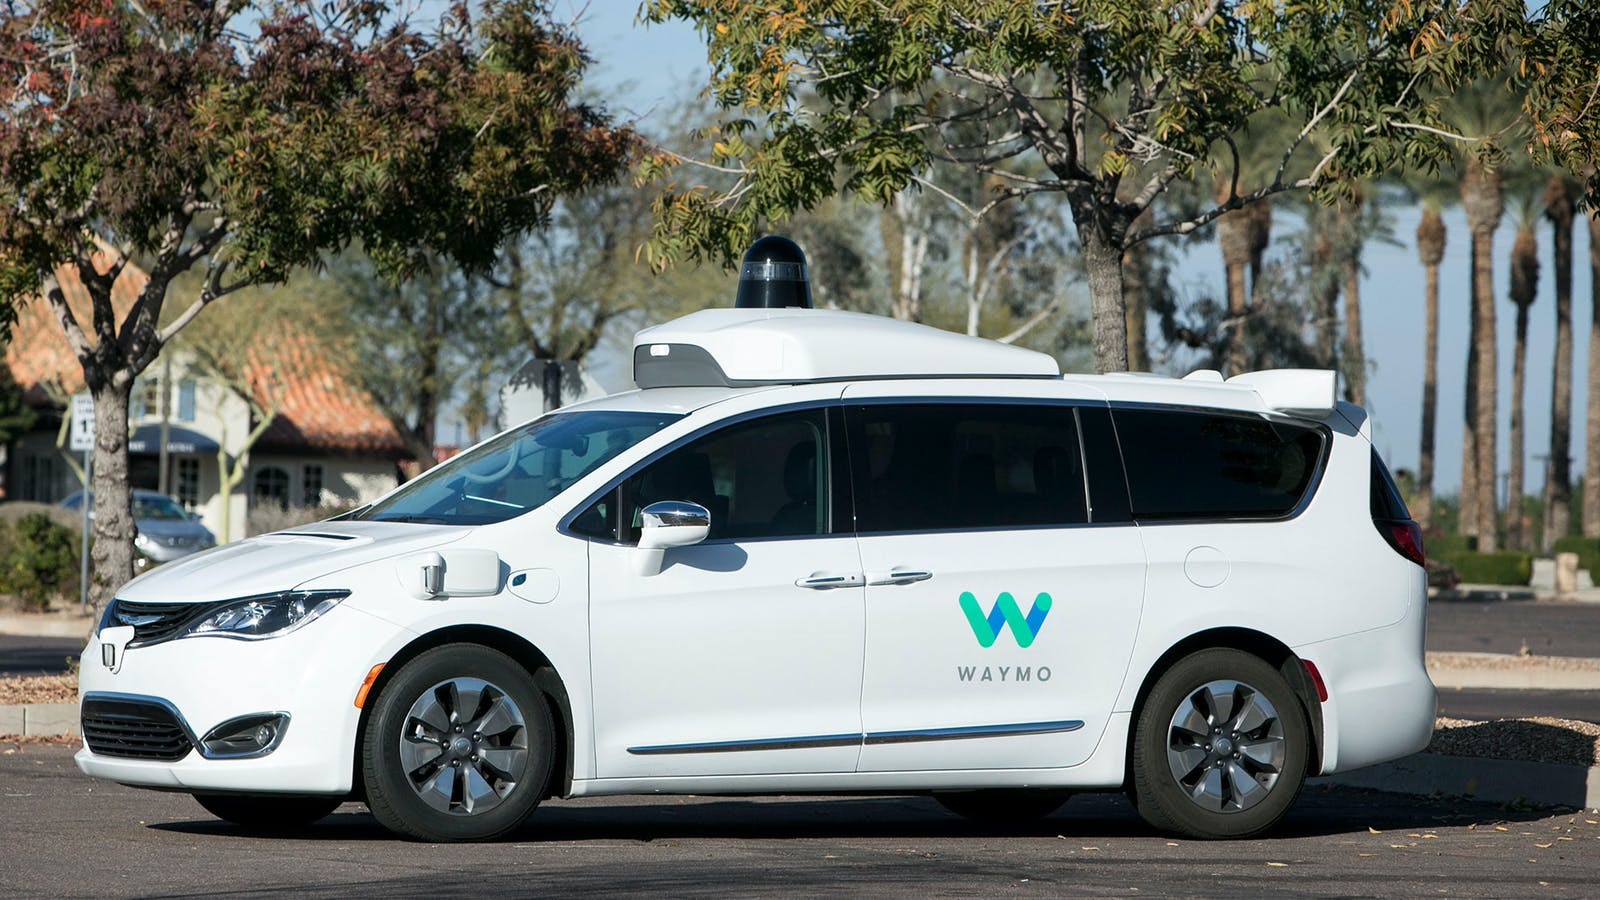 A Chrysler Pacifica hybrid outfitted with Waymo's self-driving technology, in Tempe, Arizona. Photo by AP